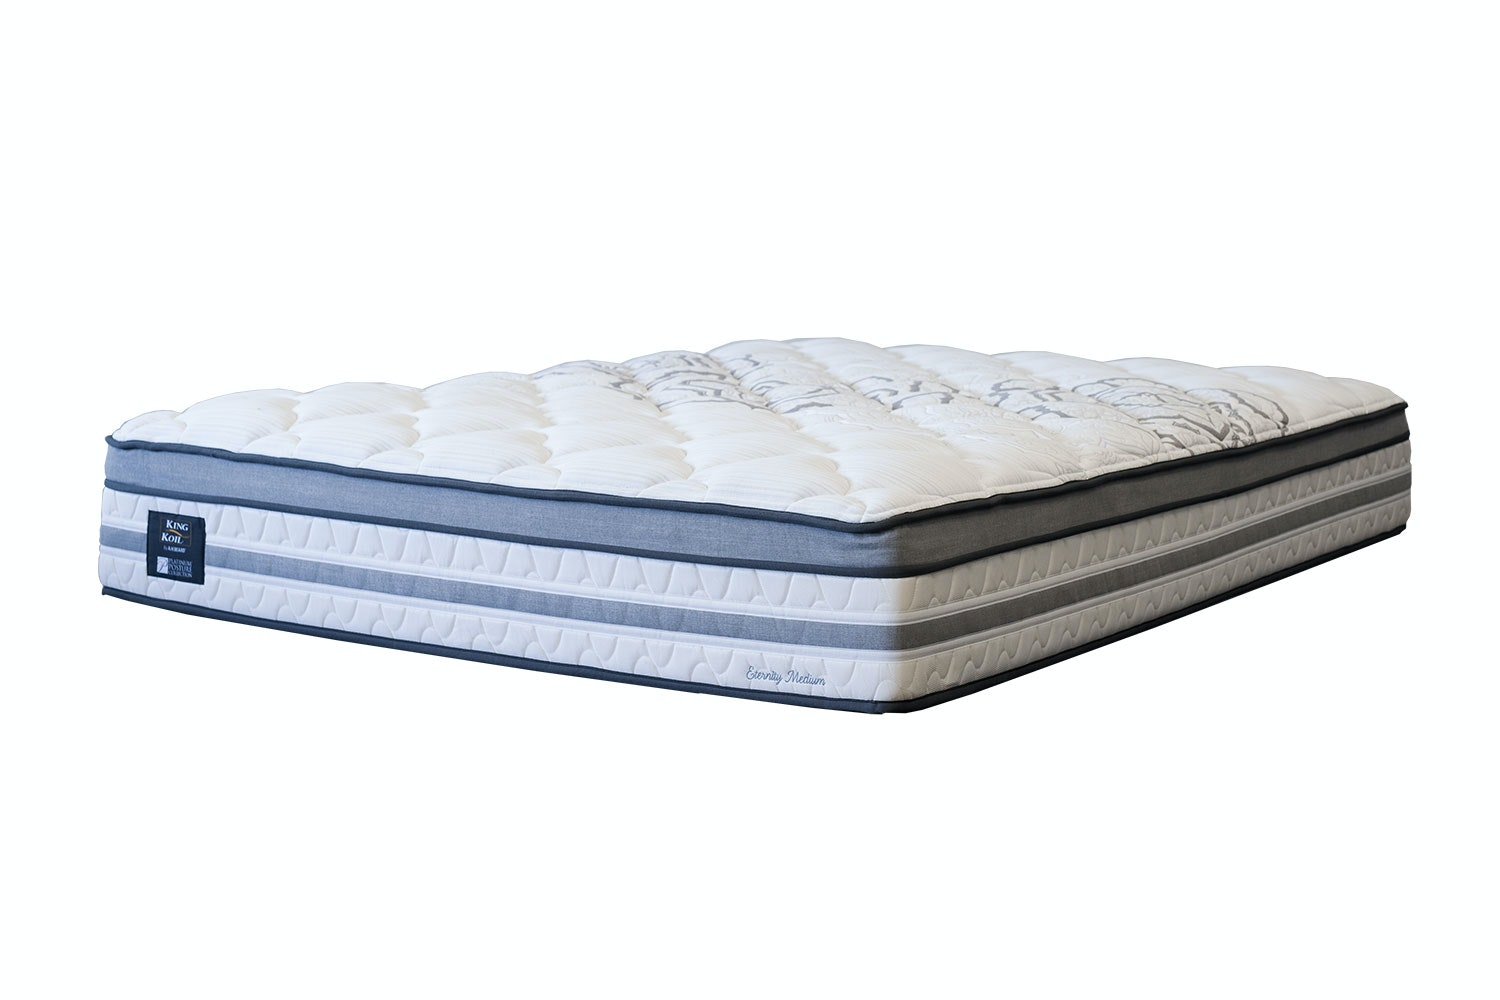 Eternity Medium King Single Mattress by King Koil